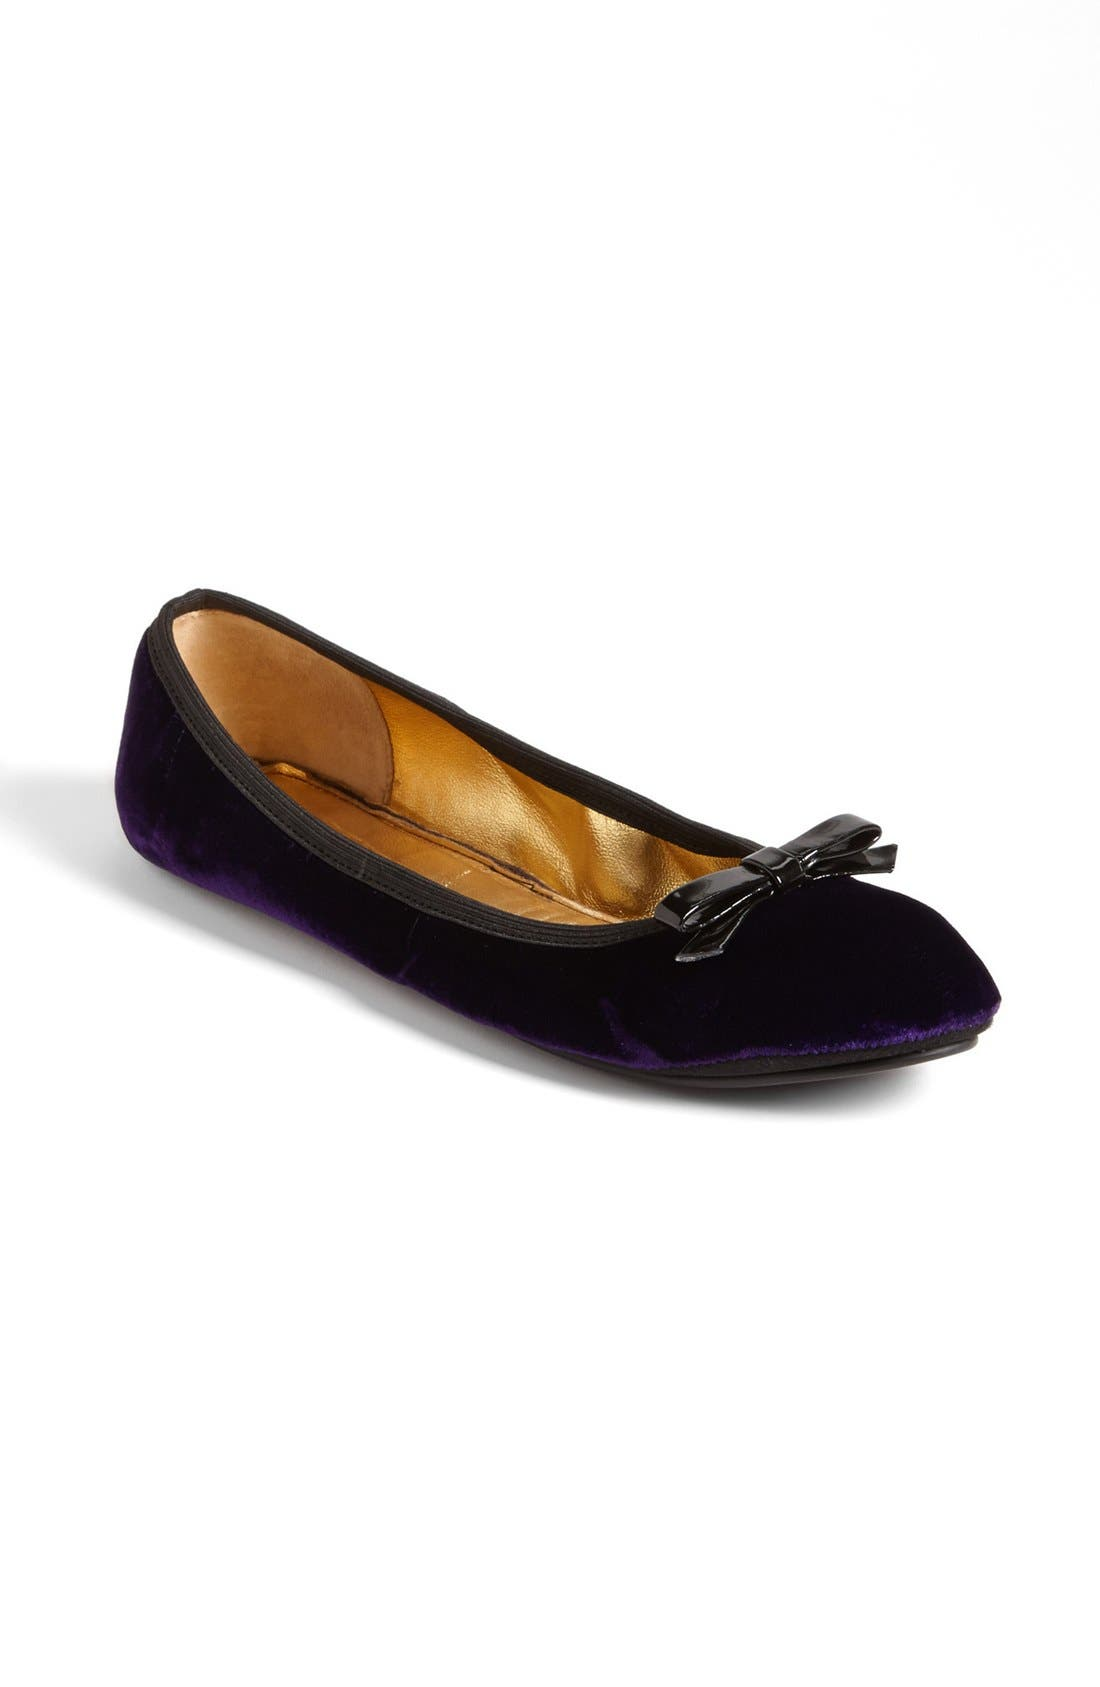 Alternate Image 1 Selected - kate spade new york 'catcher' flat